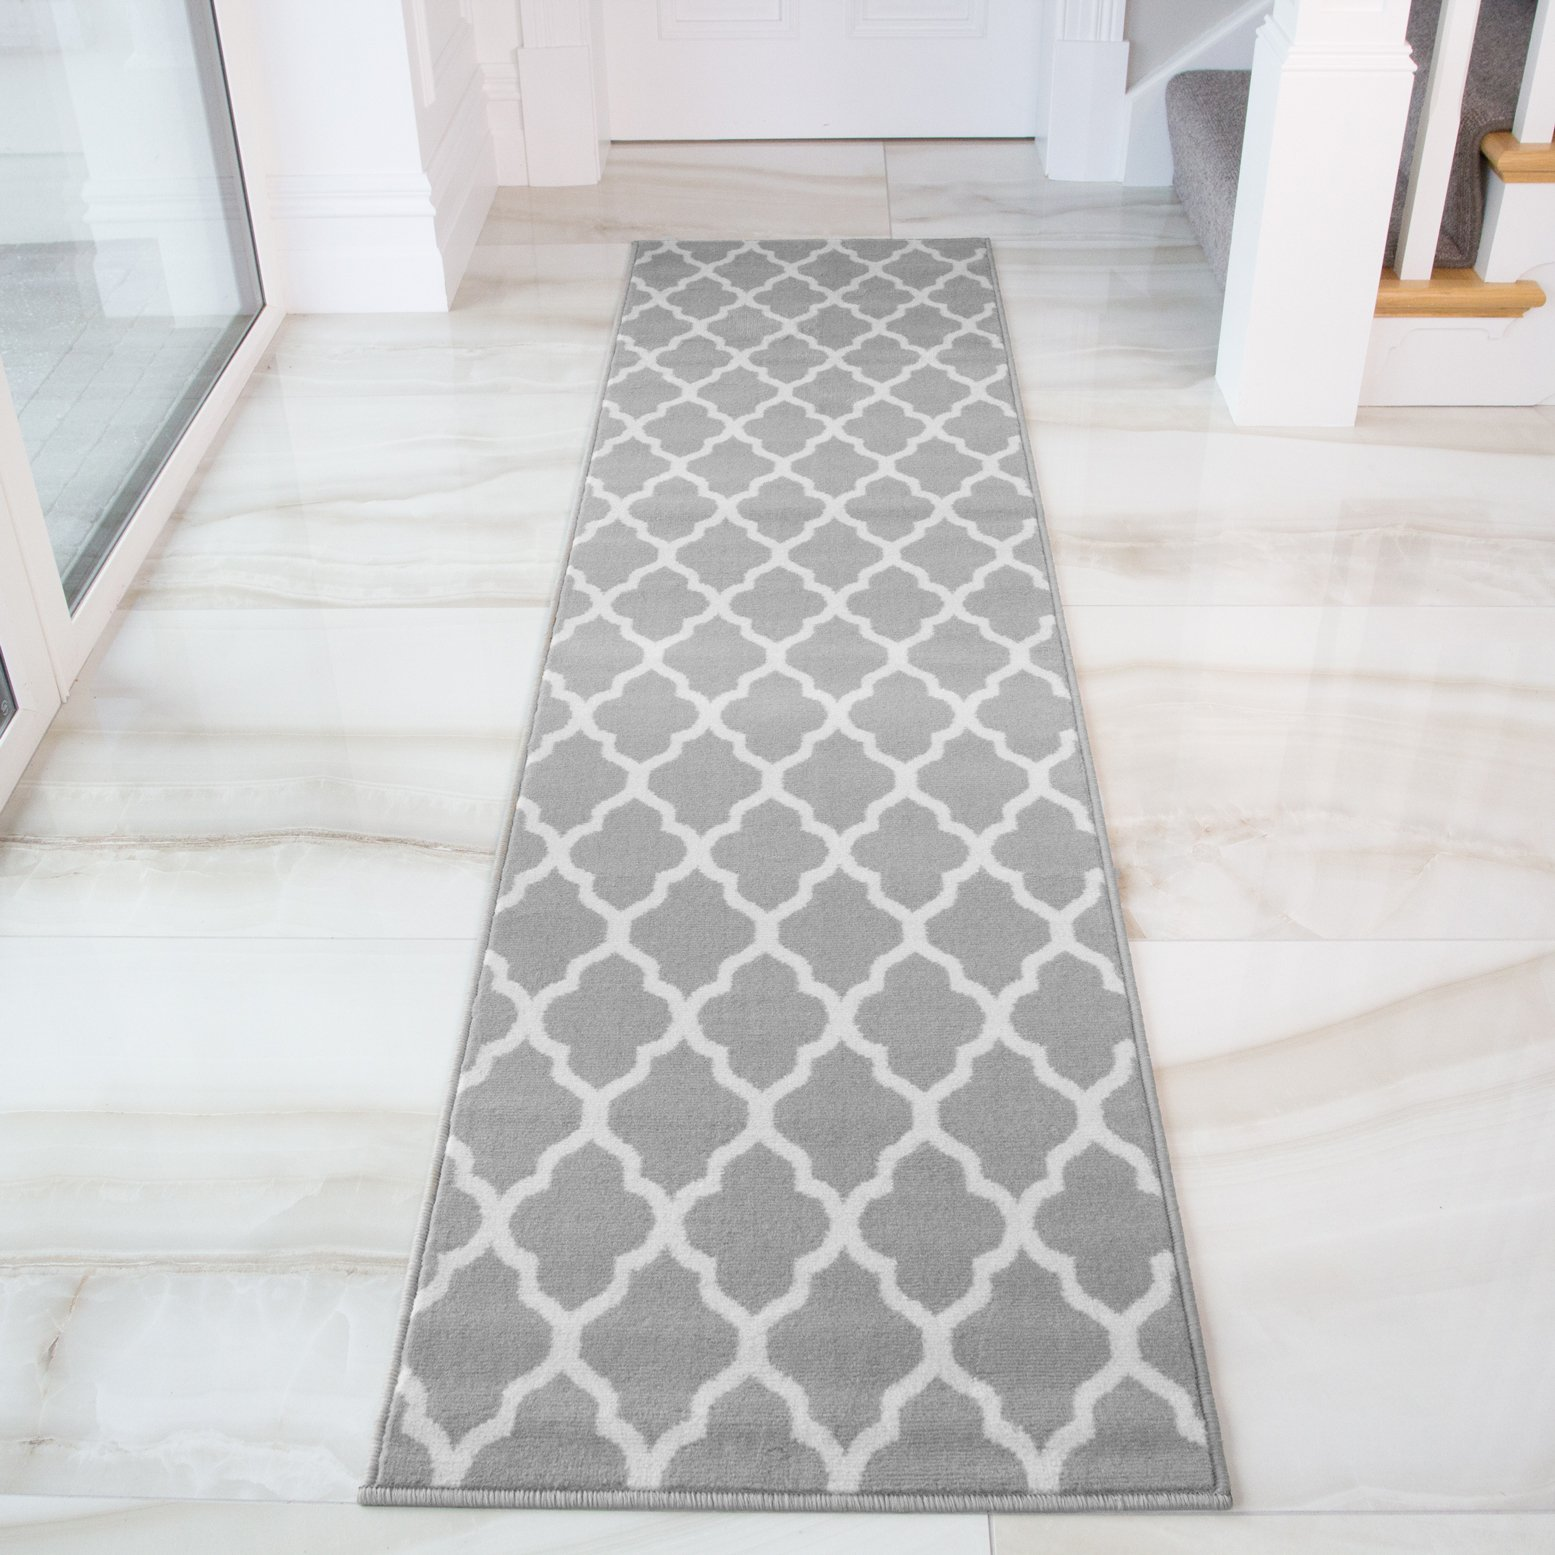 Details About Gray Runner Rugs Runners For Hallway Moroccan Trellis Carpet Runners